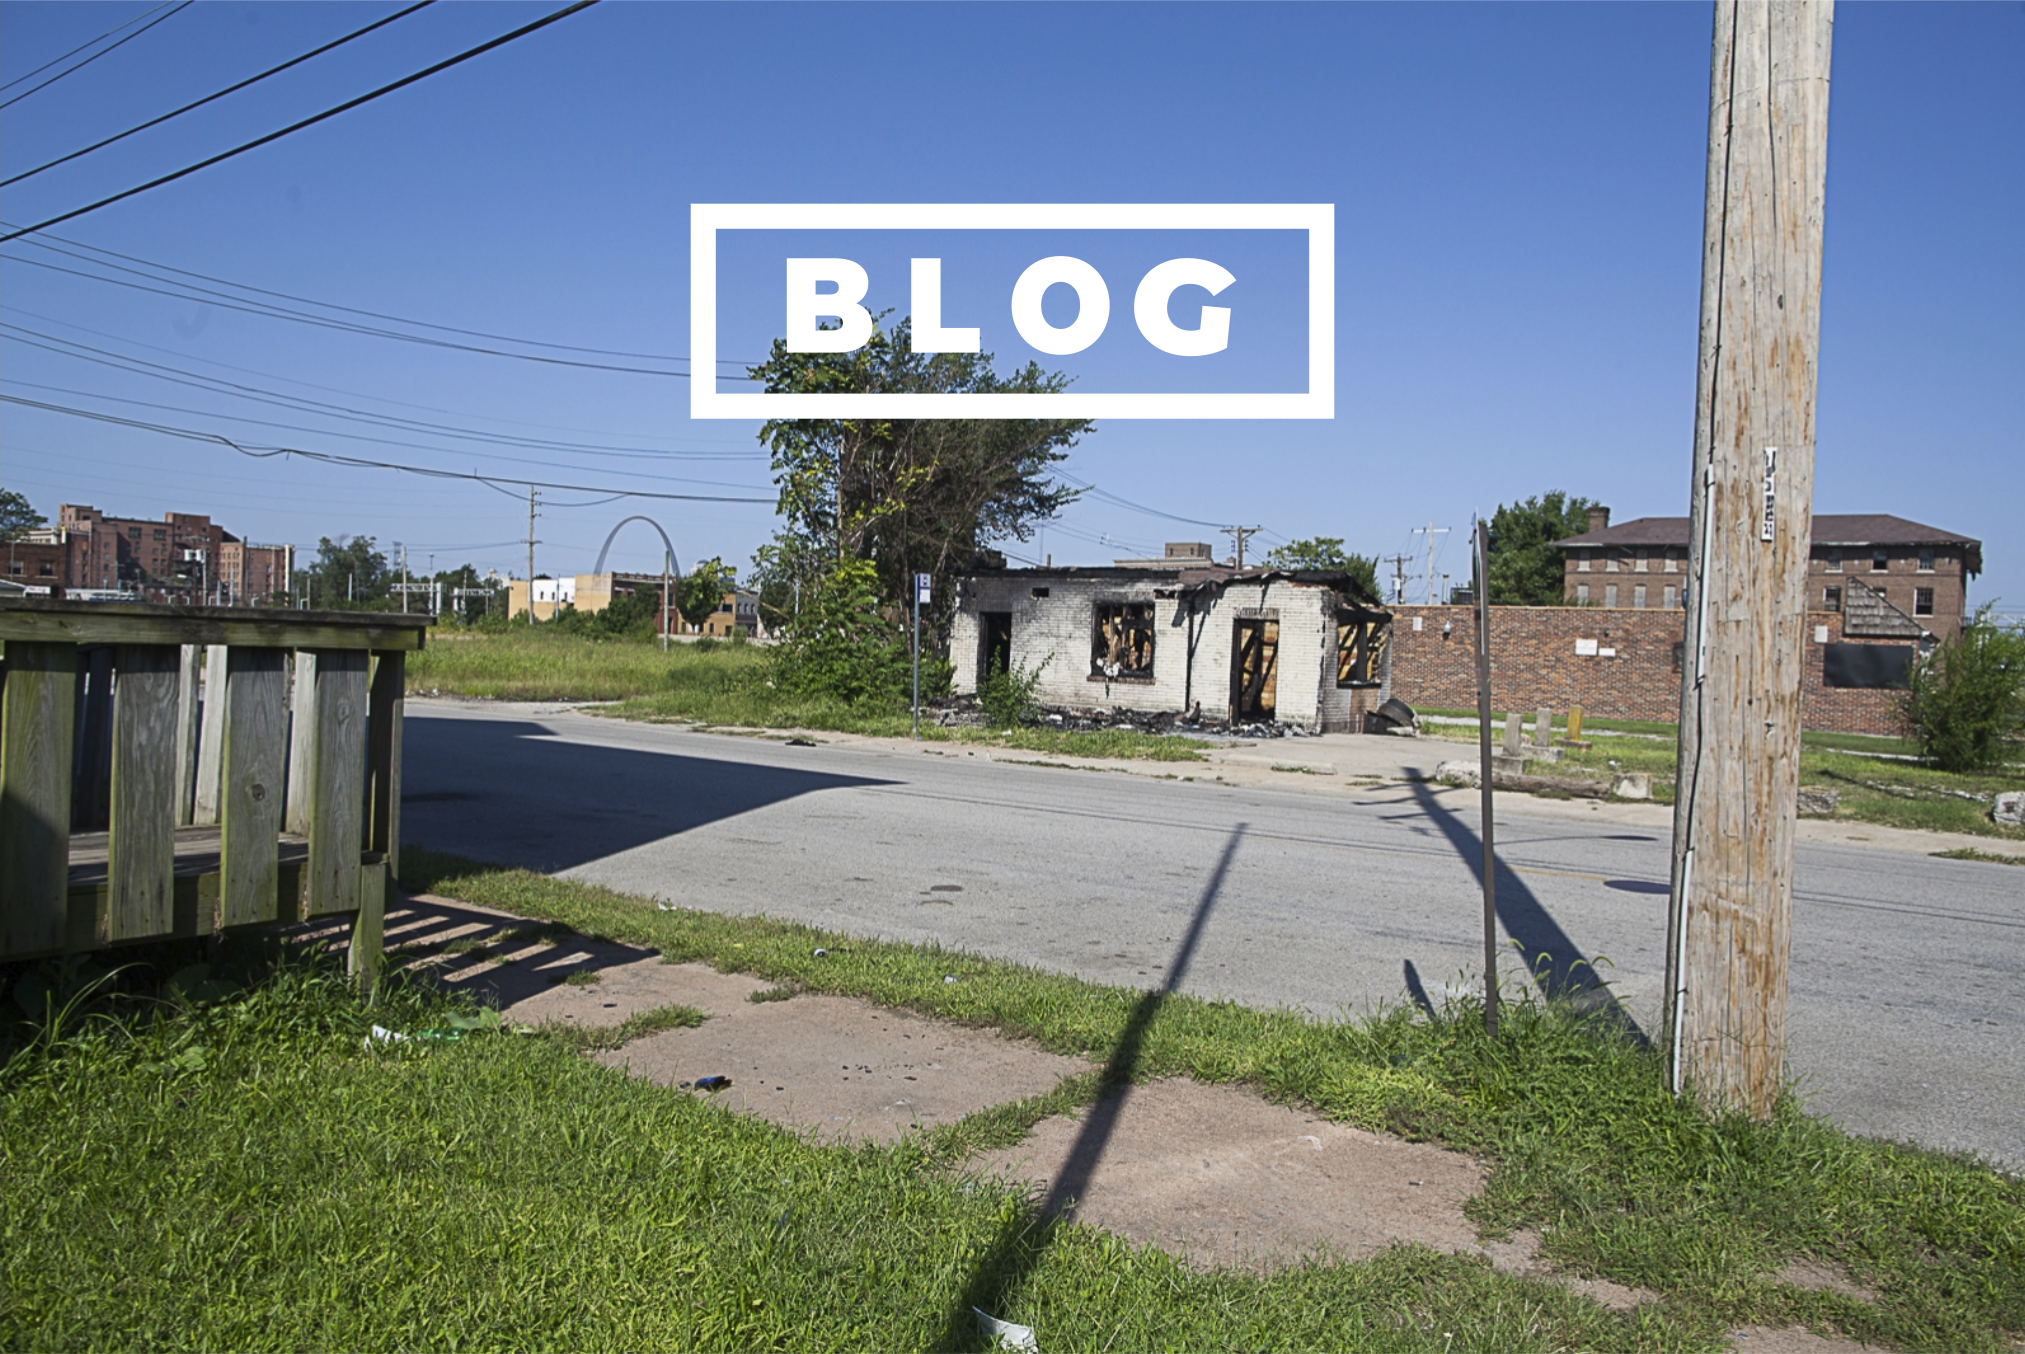 Detained in East Saint Louis - March 6, 2019East Saint Louis is in Illinois, just across the Mississippi River from the Saint Louis of Gateway Arch fame. It is a deflated, decaying former city, now more vacant than vibrant. Twice I traveled to the city to photograph it. Only once was I detained by police there. Read more…